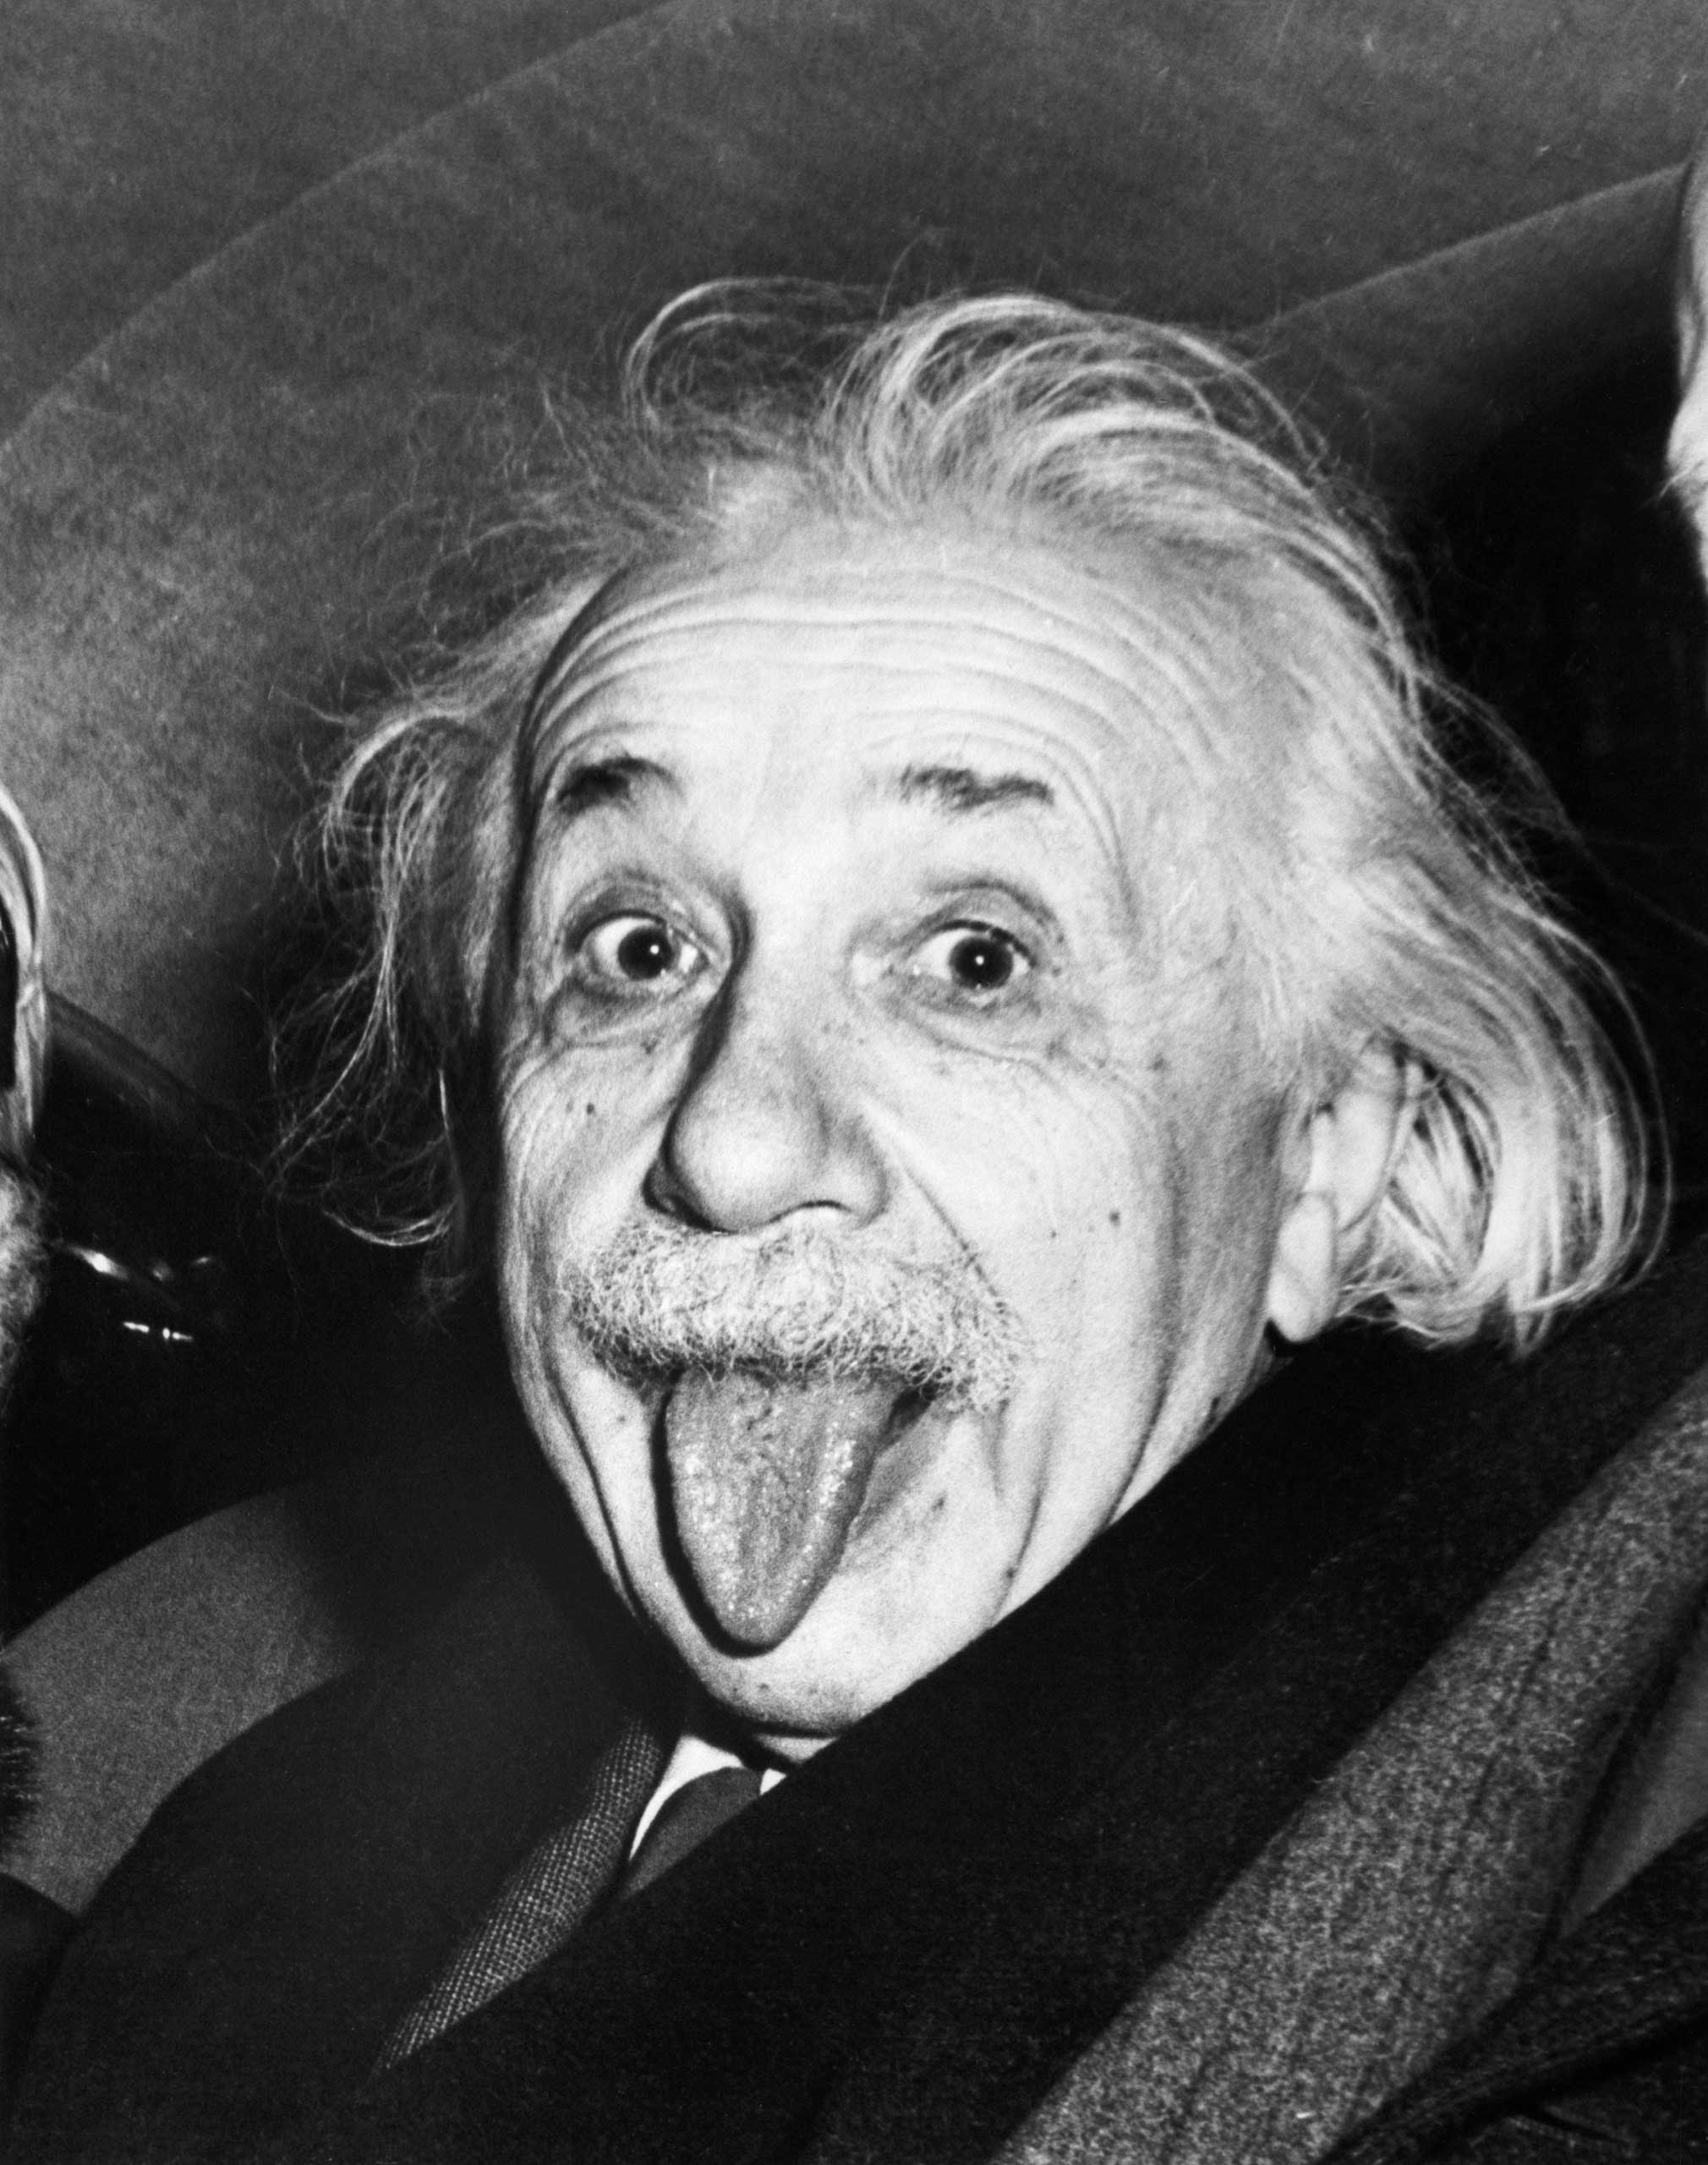 Albert Einstein sticks out his tongue when asked by photographers to smile on the occasion of his 72nd birthday on March 14, 1951. Princeton, NJ.